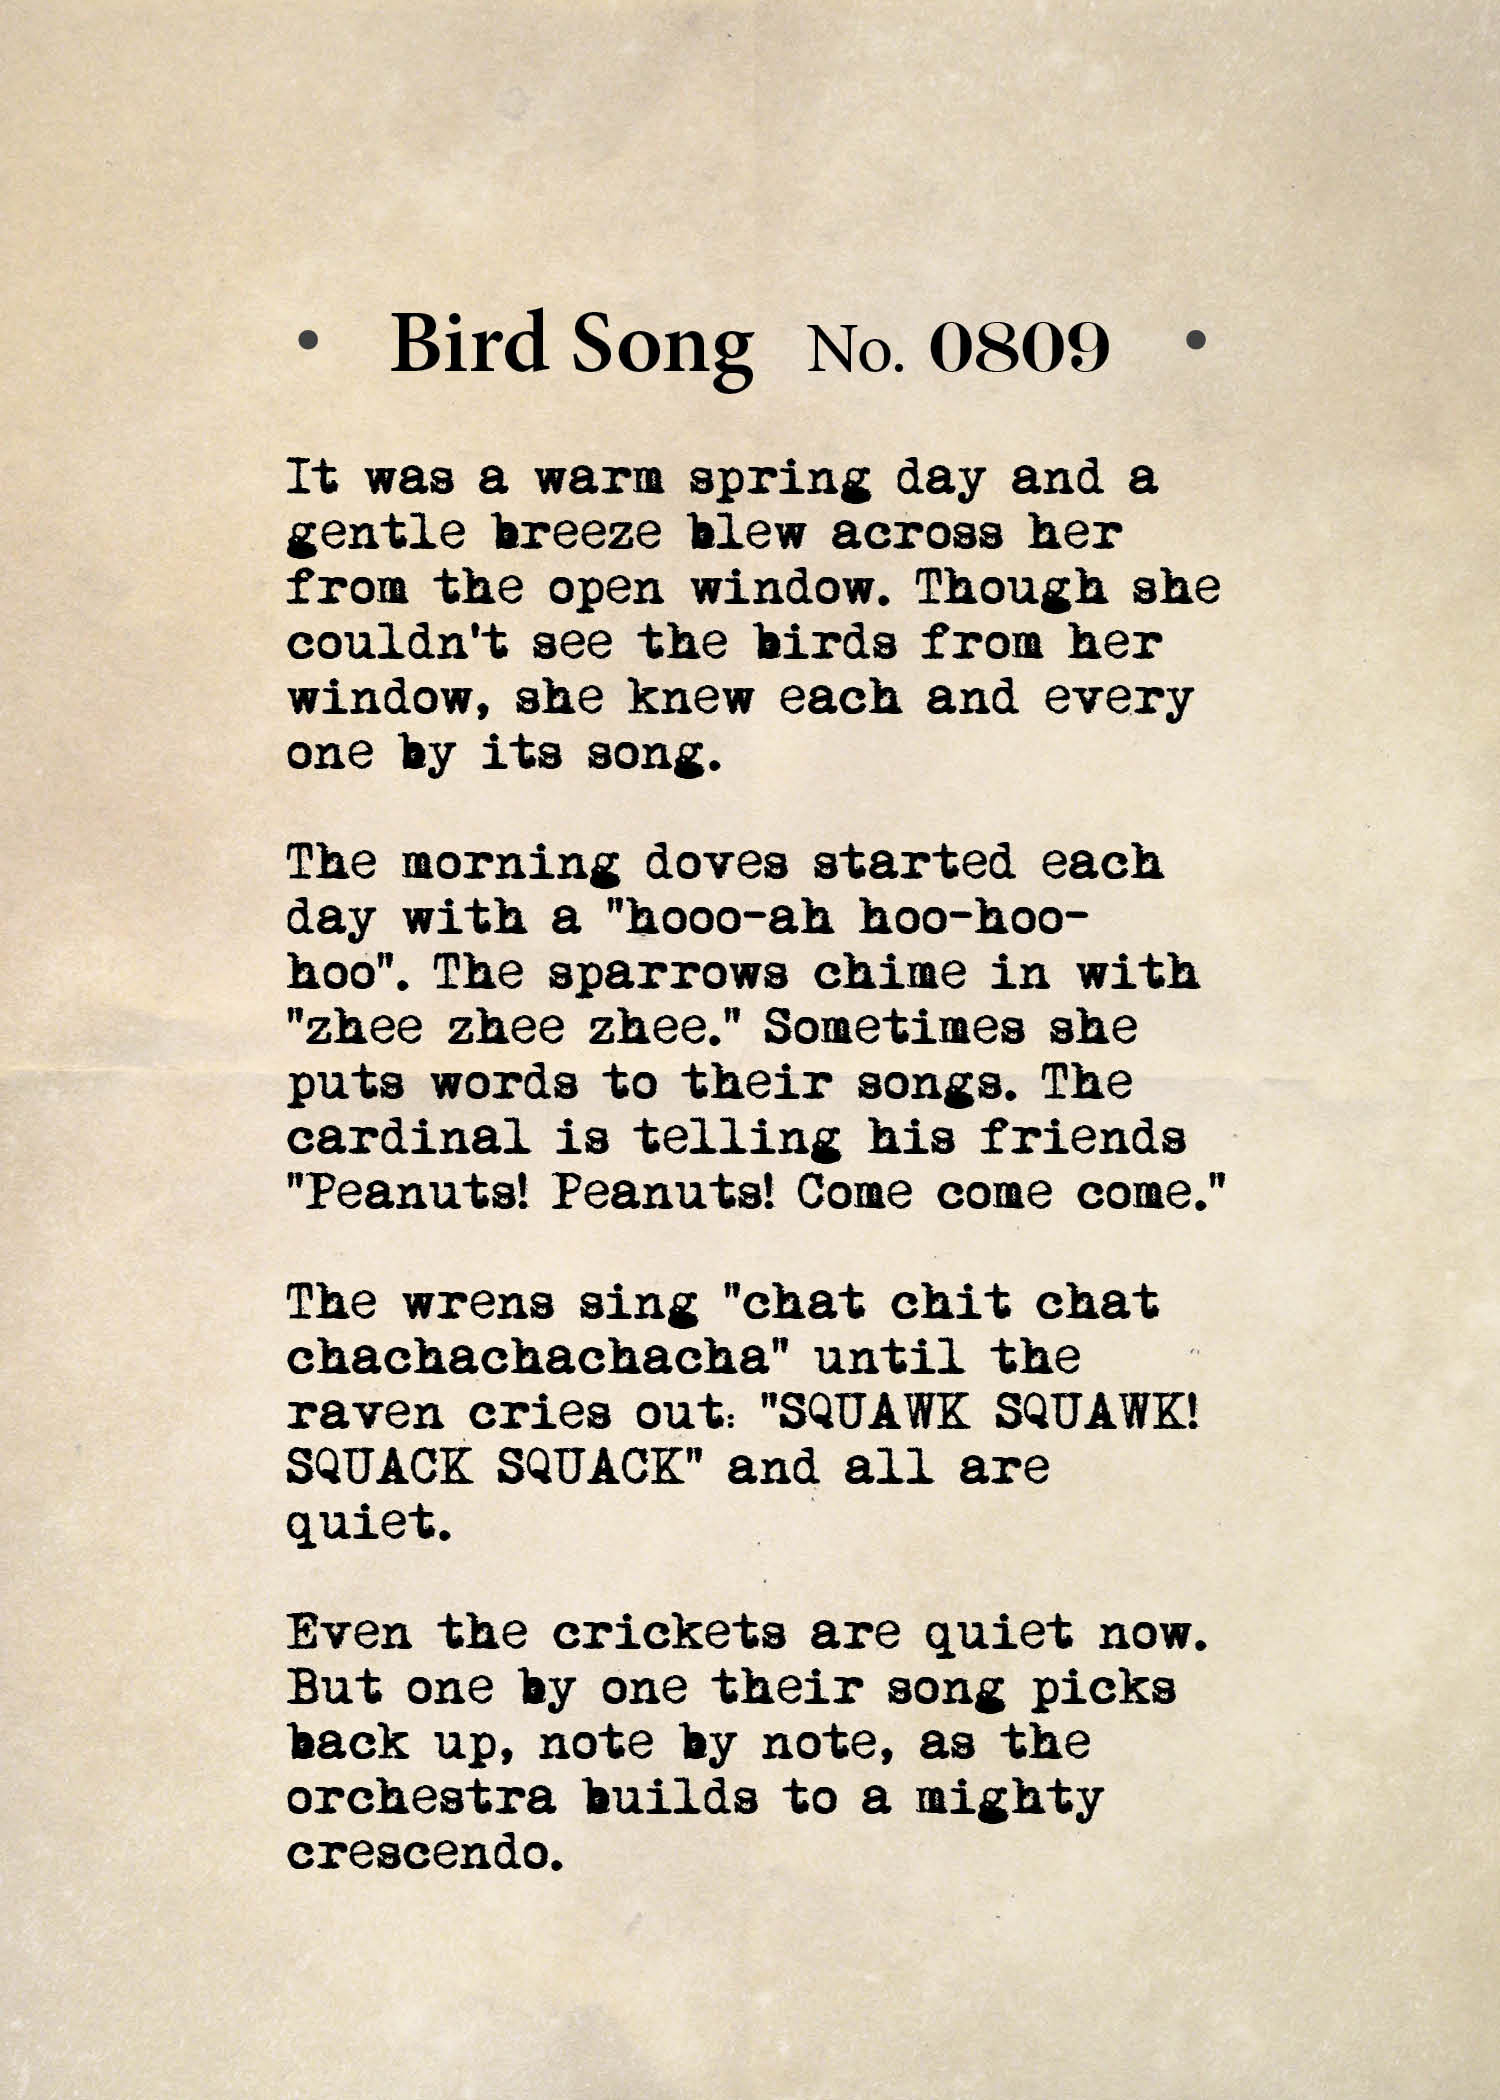 Bird Song No. 0809